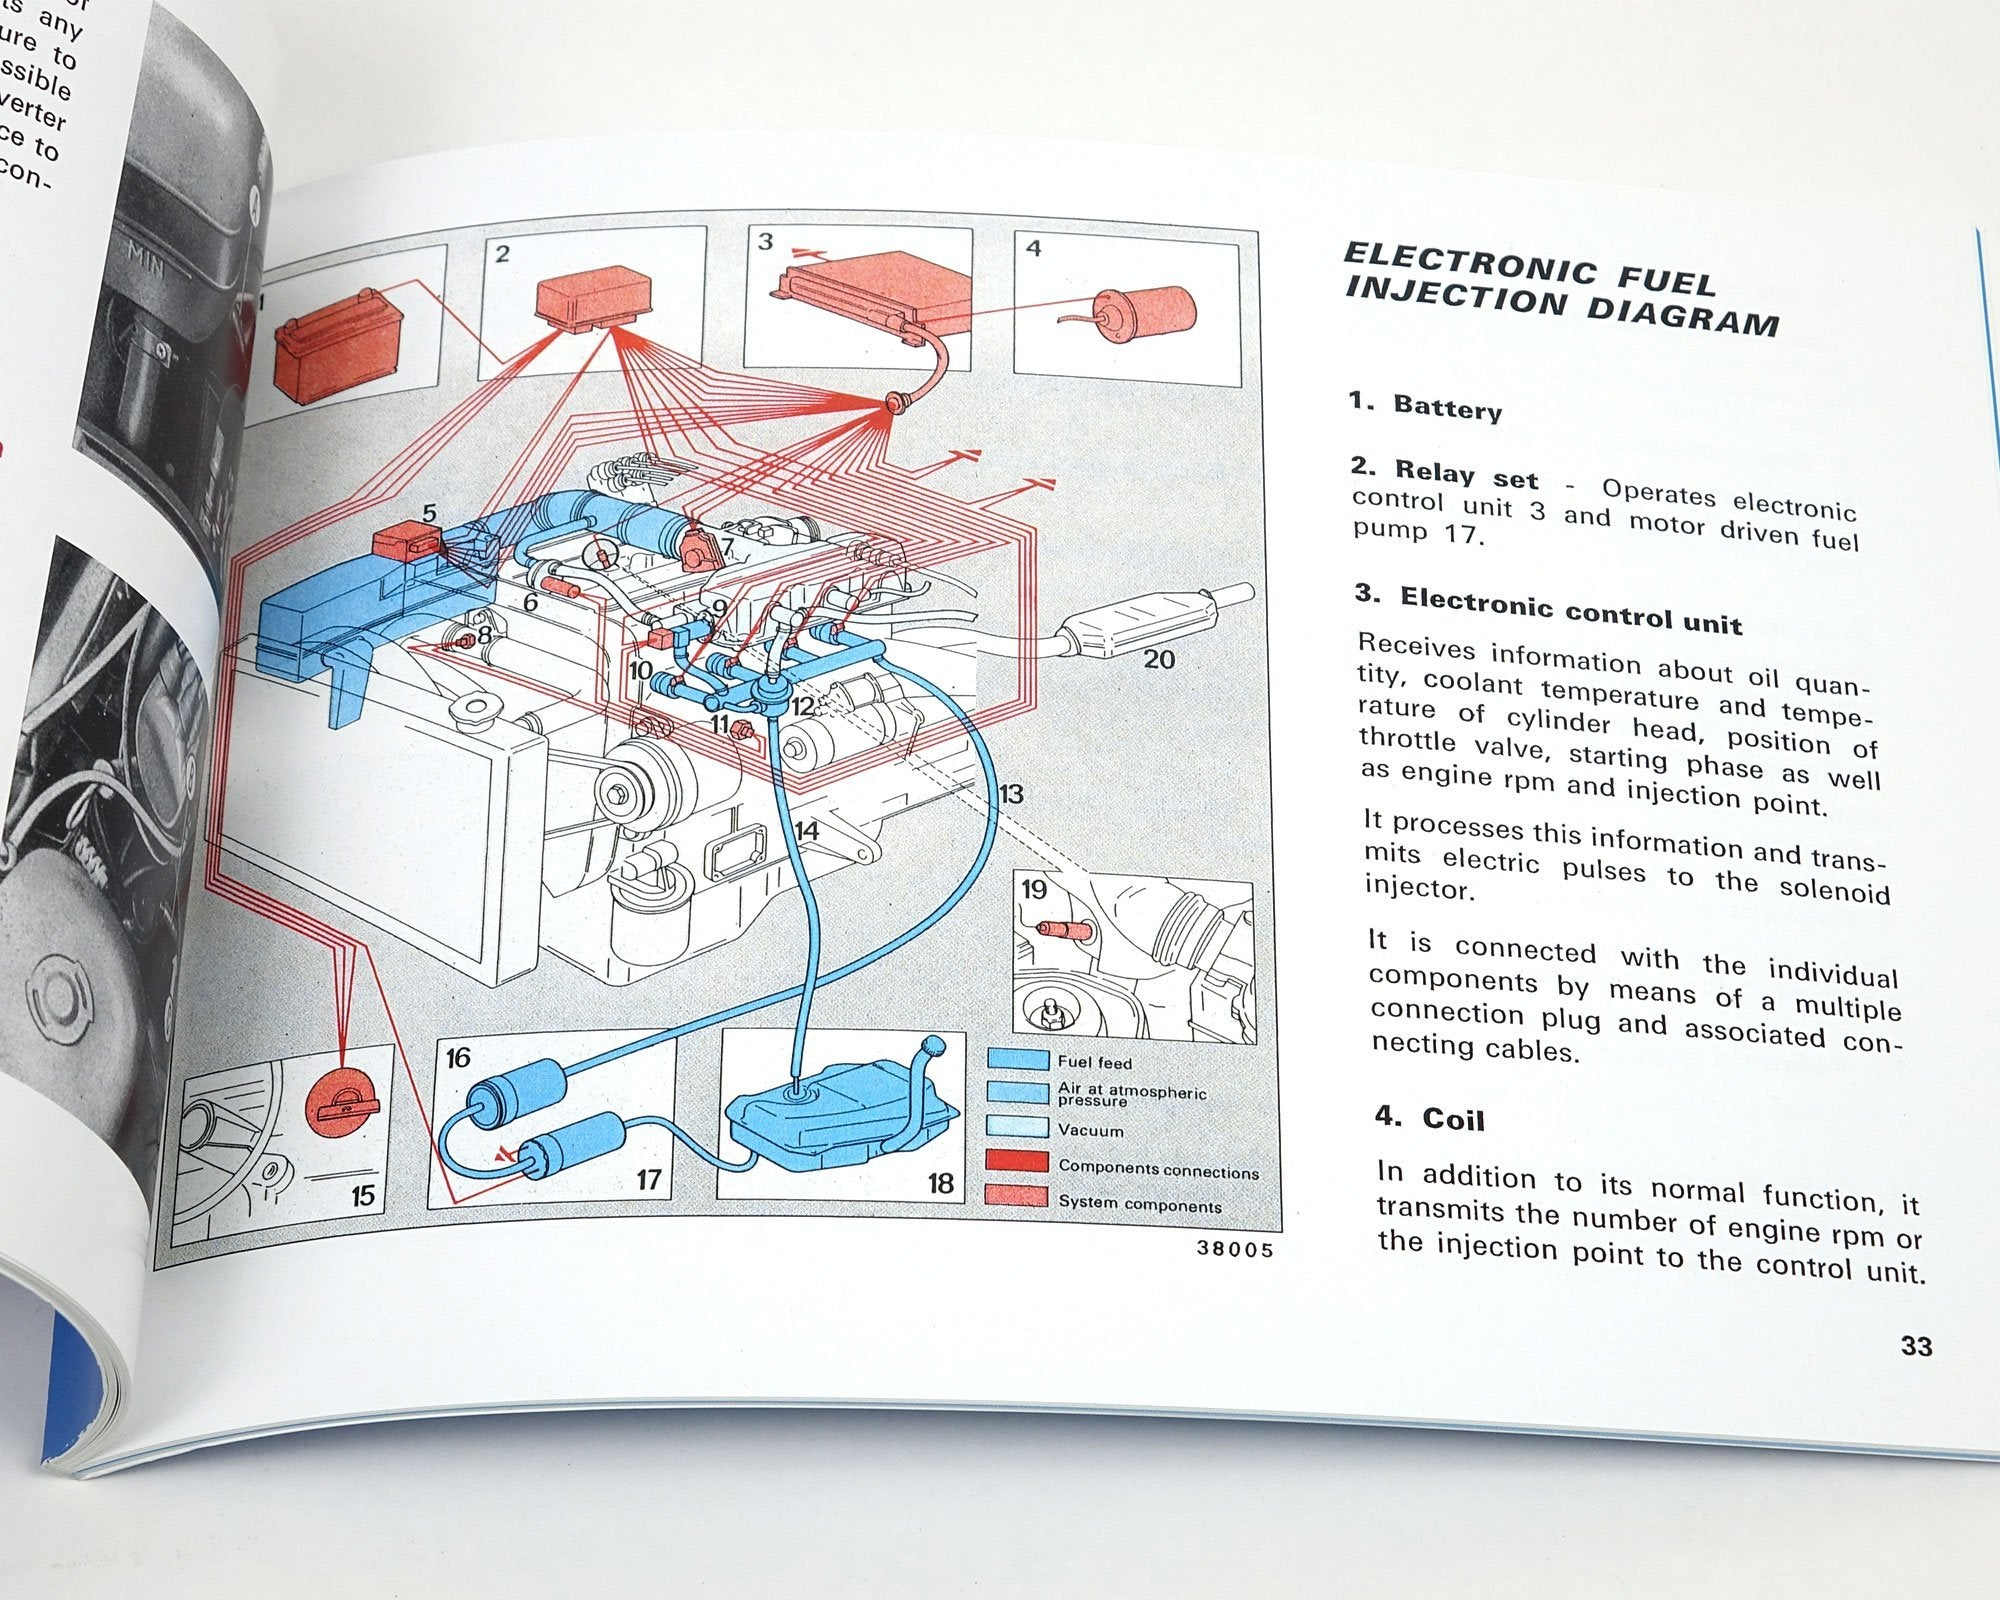 1981 Fiat Spider Wiring Diagram Trusted Diagrams 124 Manual Schematic 1992 Ford Mustang